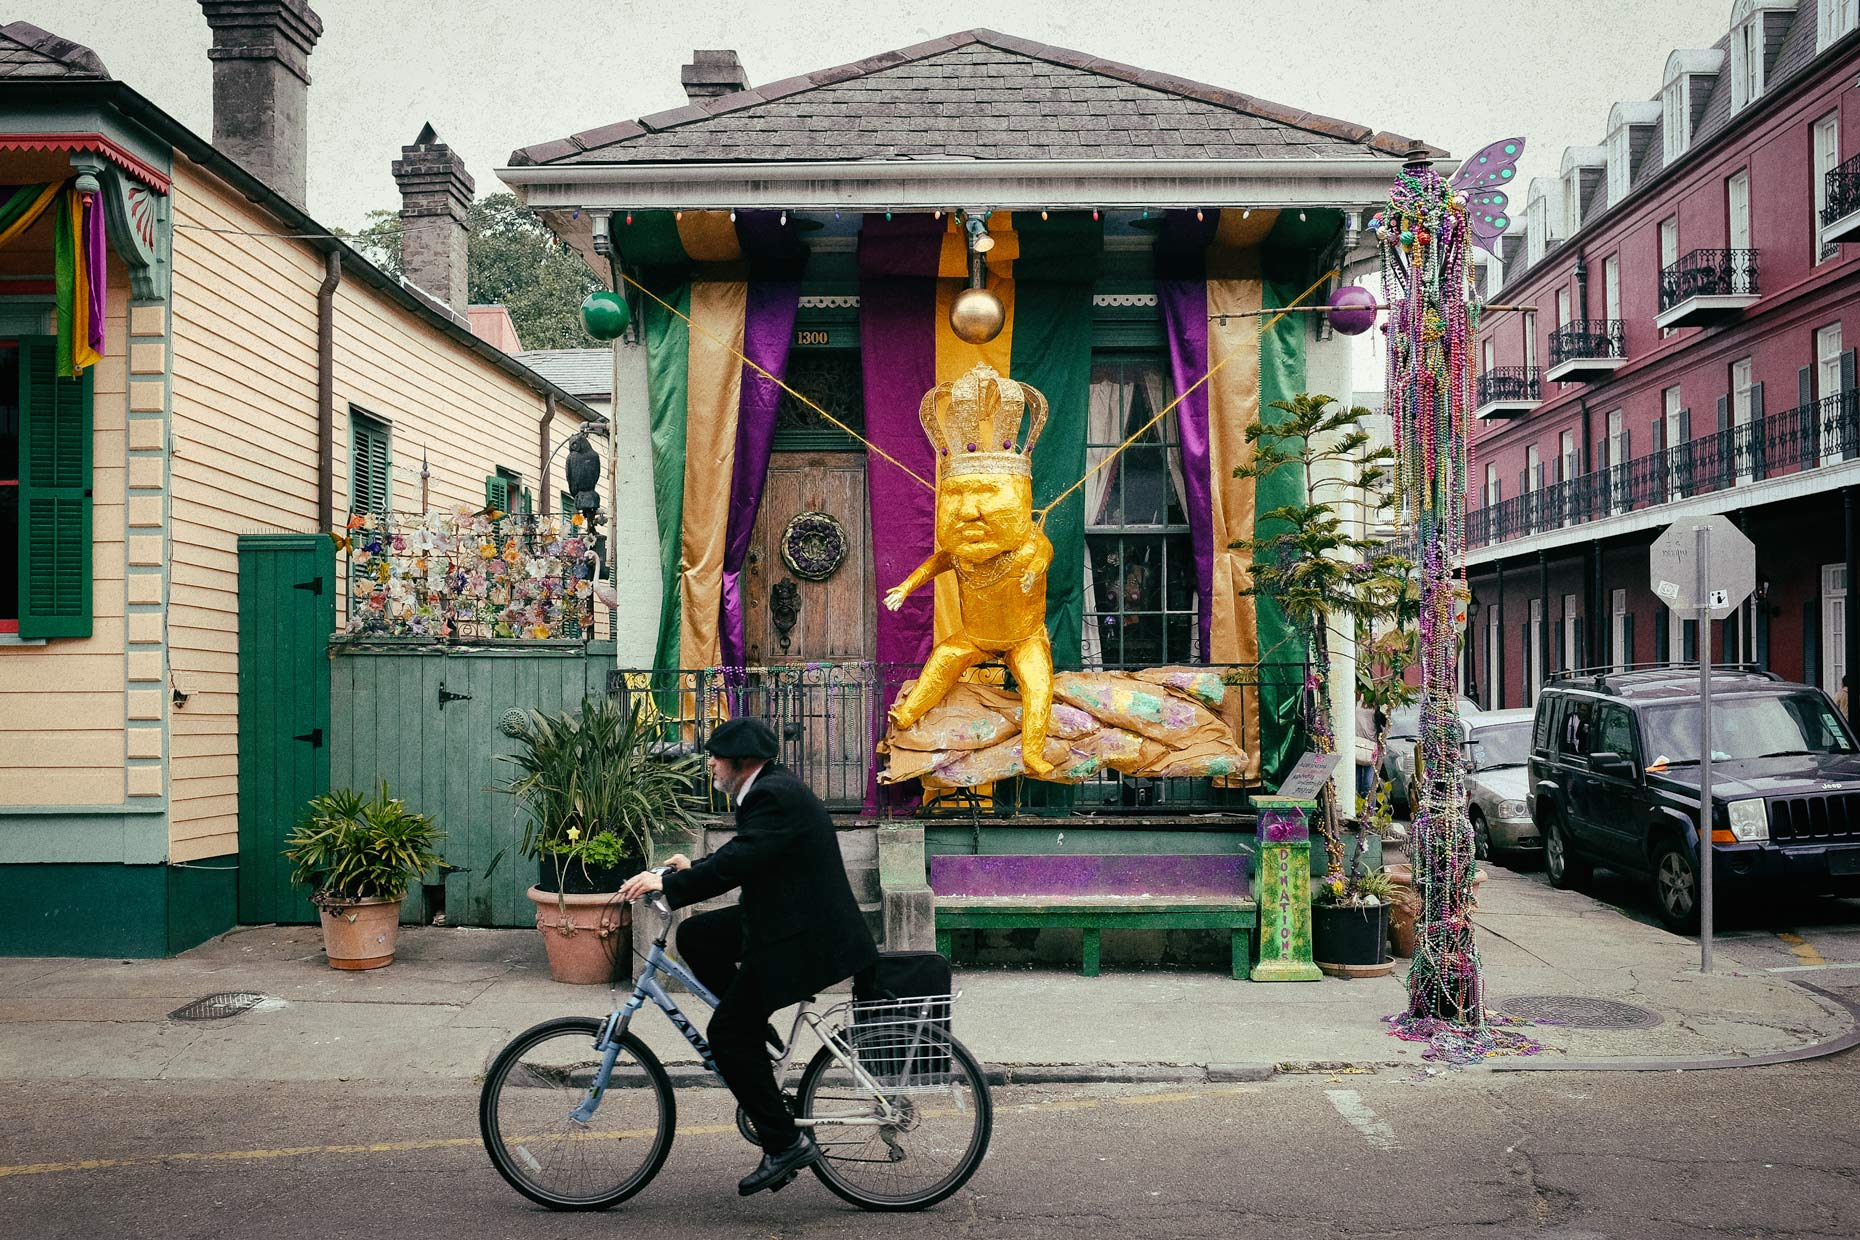 Shotgun house in New Orleans by photographer Kevin Brown